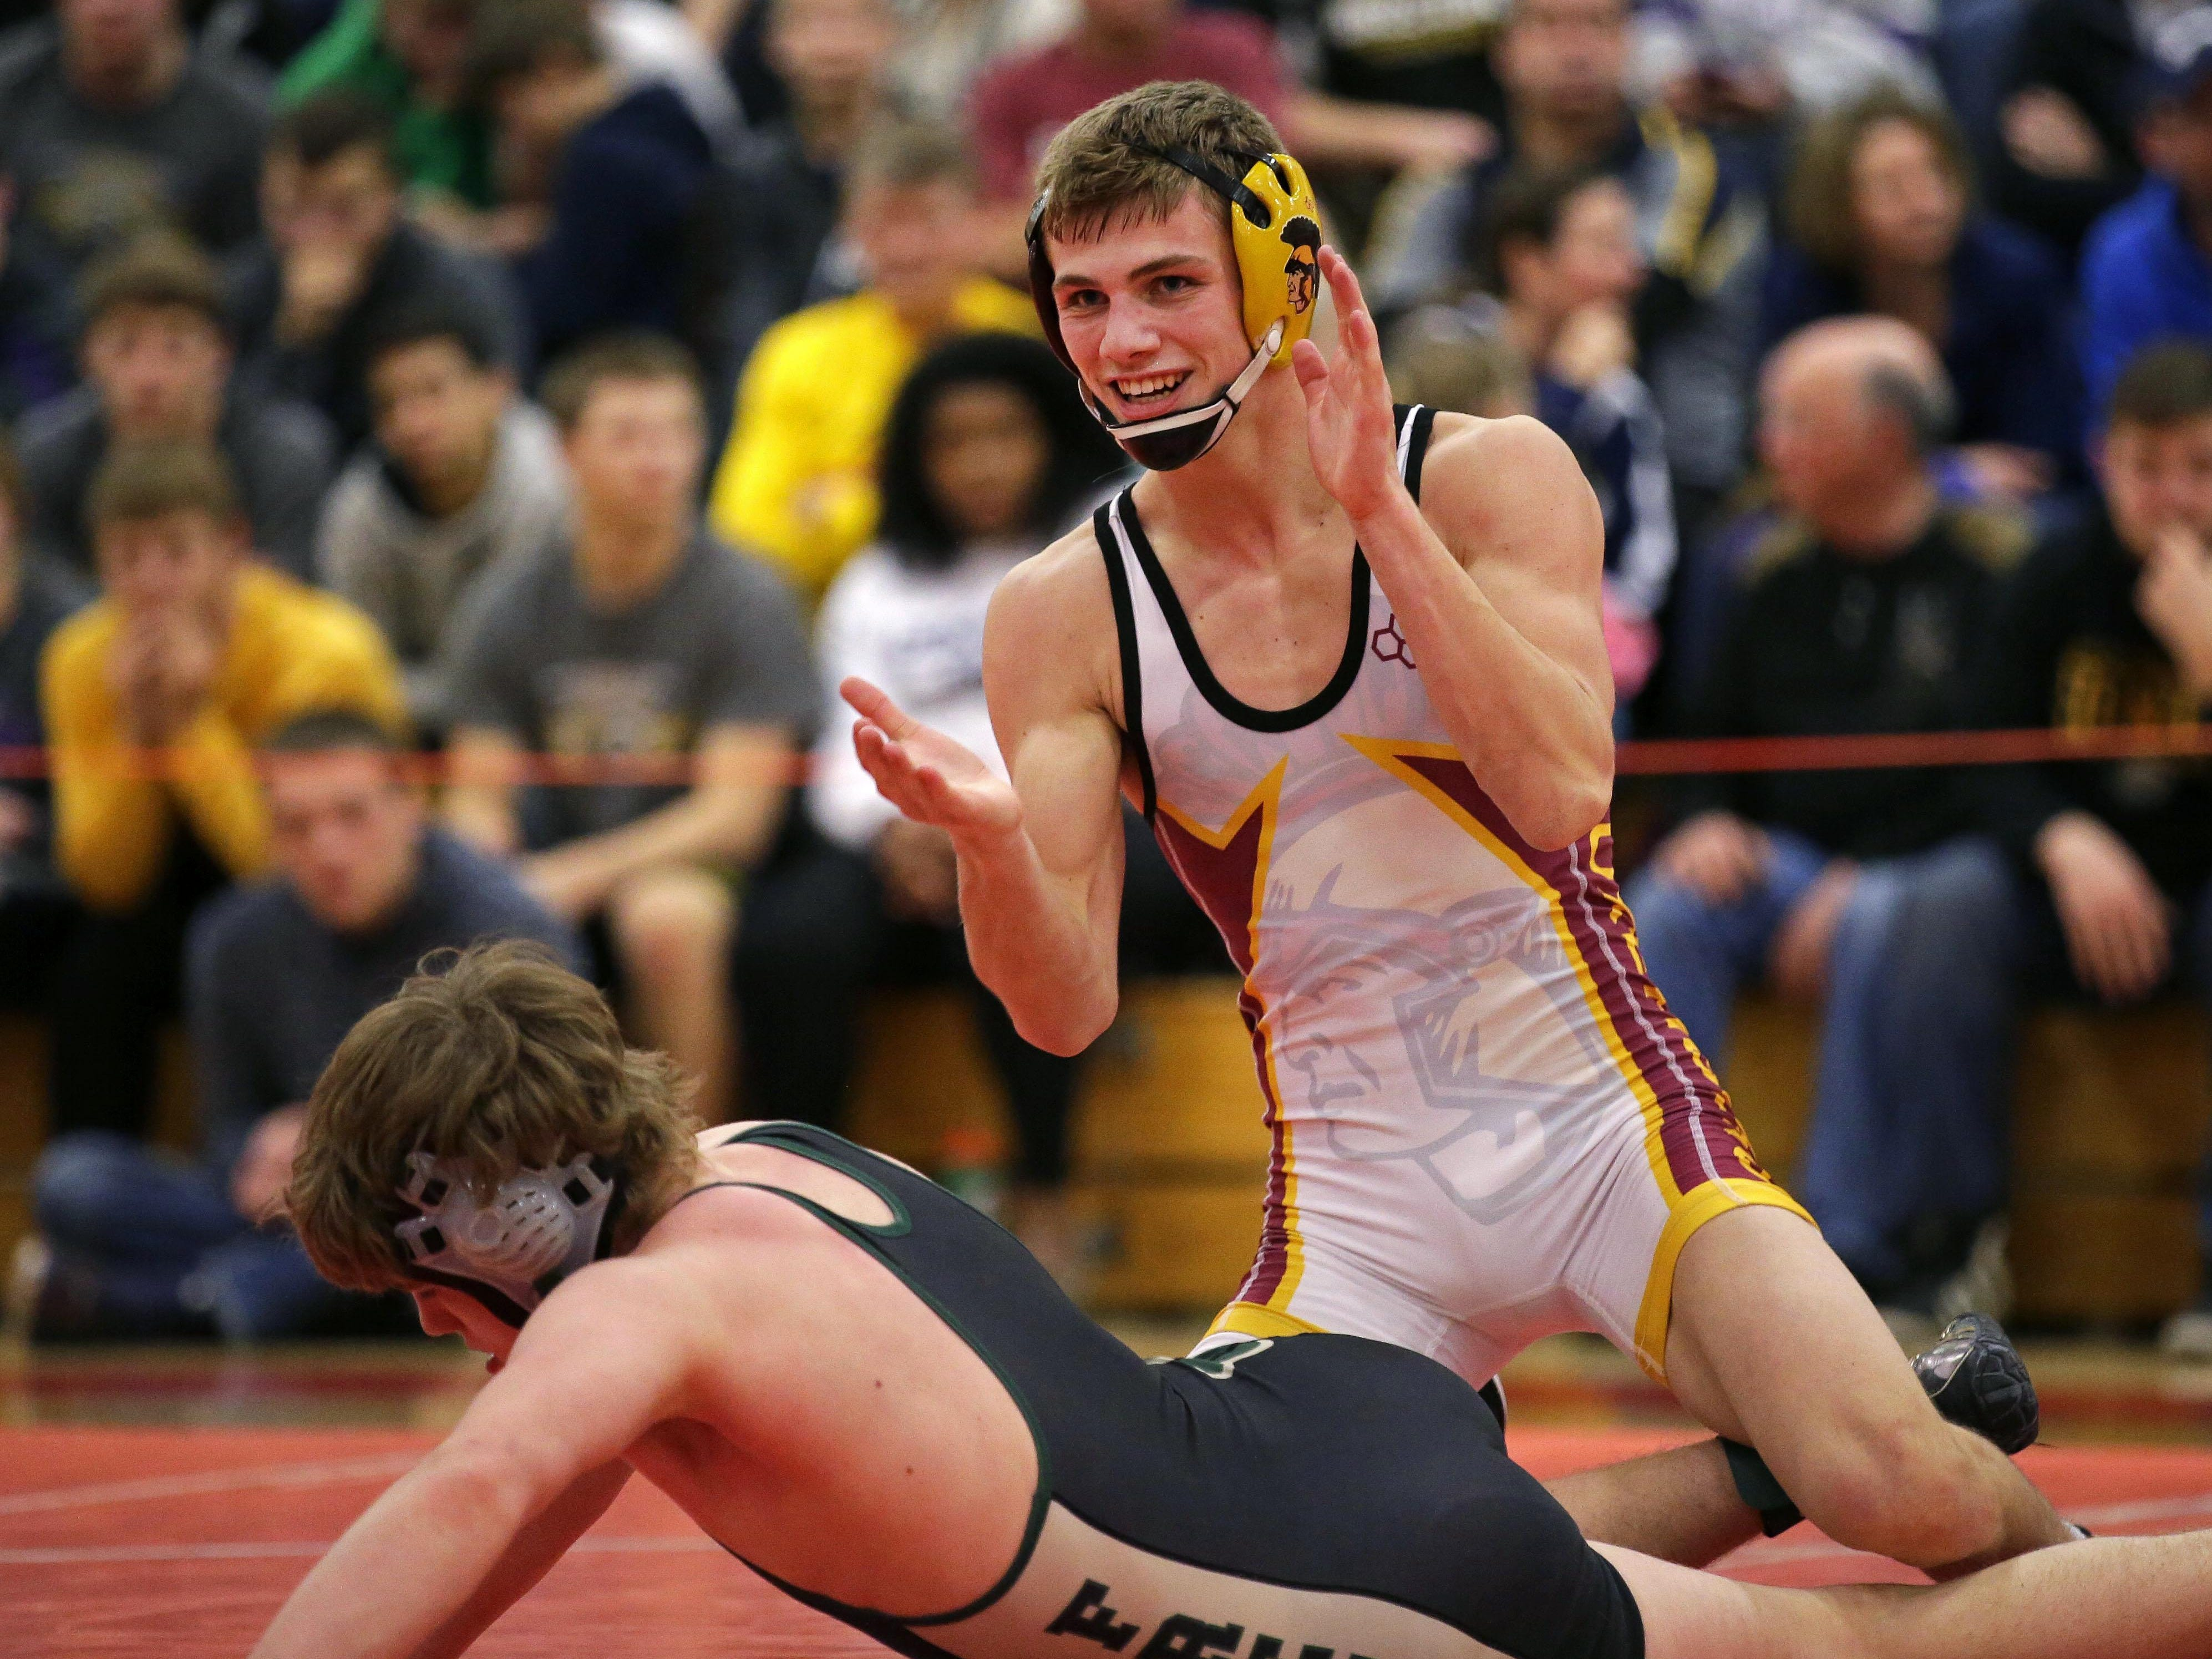 Nathan Ronsman of Luxemburg-Casco celebrates after defeating Mitch Garvey of Freedom in a 126-pound championship match at the WIAA Division 2 wrestling sectional Saturday at Seymour.